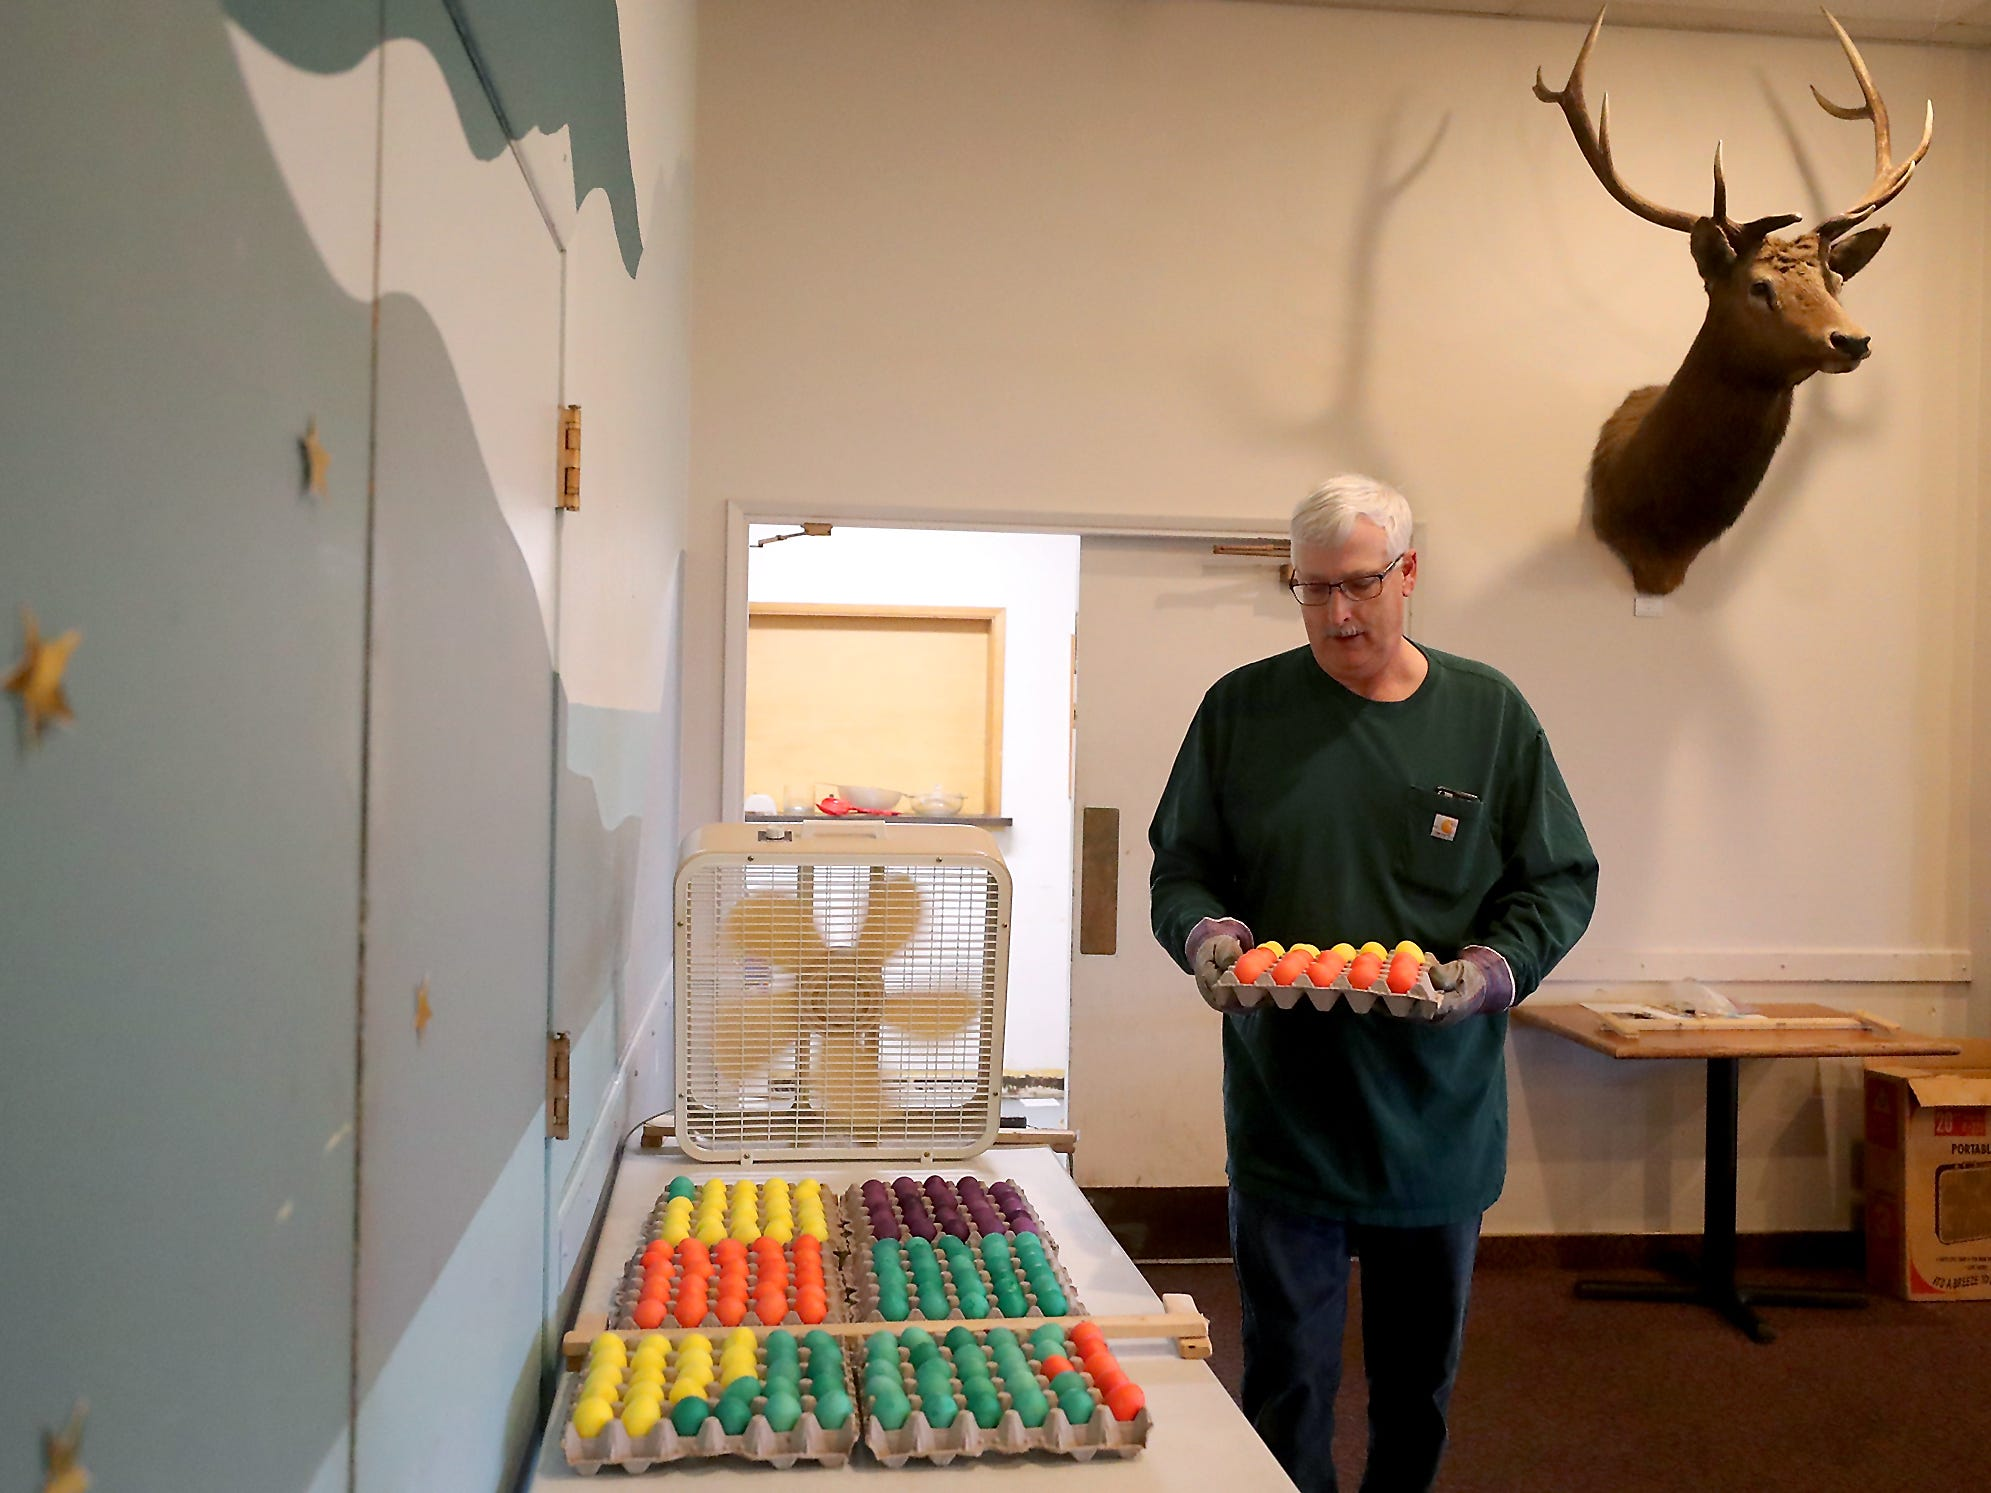 Bob Carter carries a carton of dyed eggs to the drying table as he and fellow Elks members dye eggs, put baskets together and fill plastic eggs with candy in preparation for the upcoming Easter Egg Hunt, at the Elks Lodge in Bremerton on Wednesday, April 16, 2019. Volunteers were preparing 3,000 eggs for the hunt.